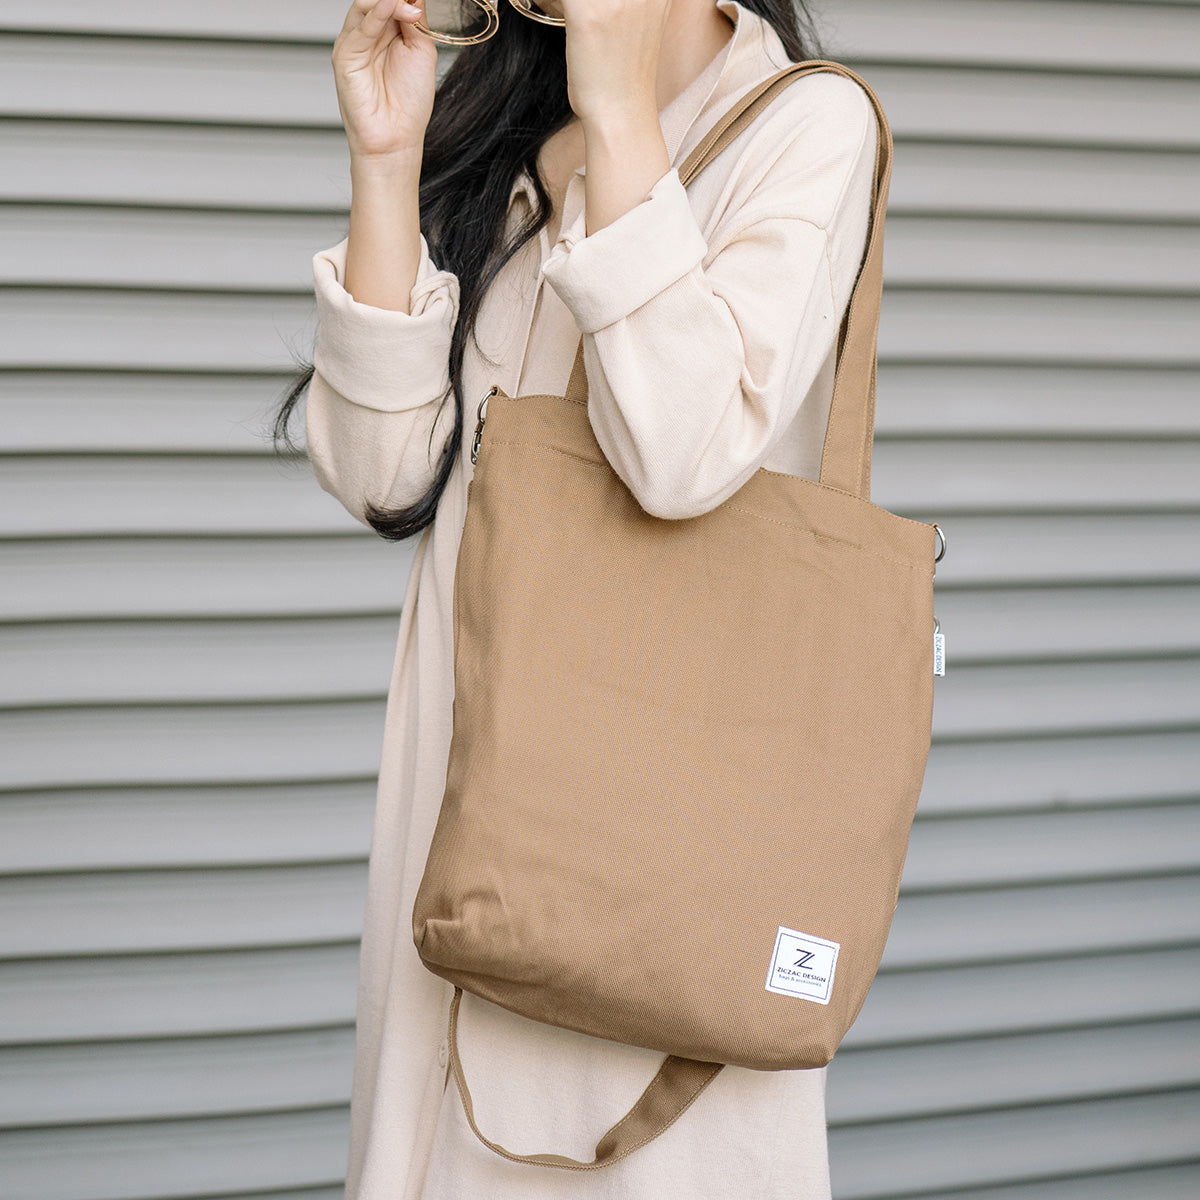 Tote 2in1